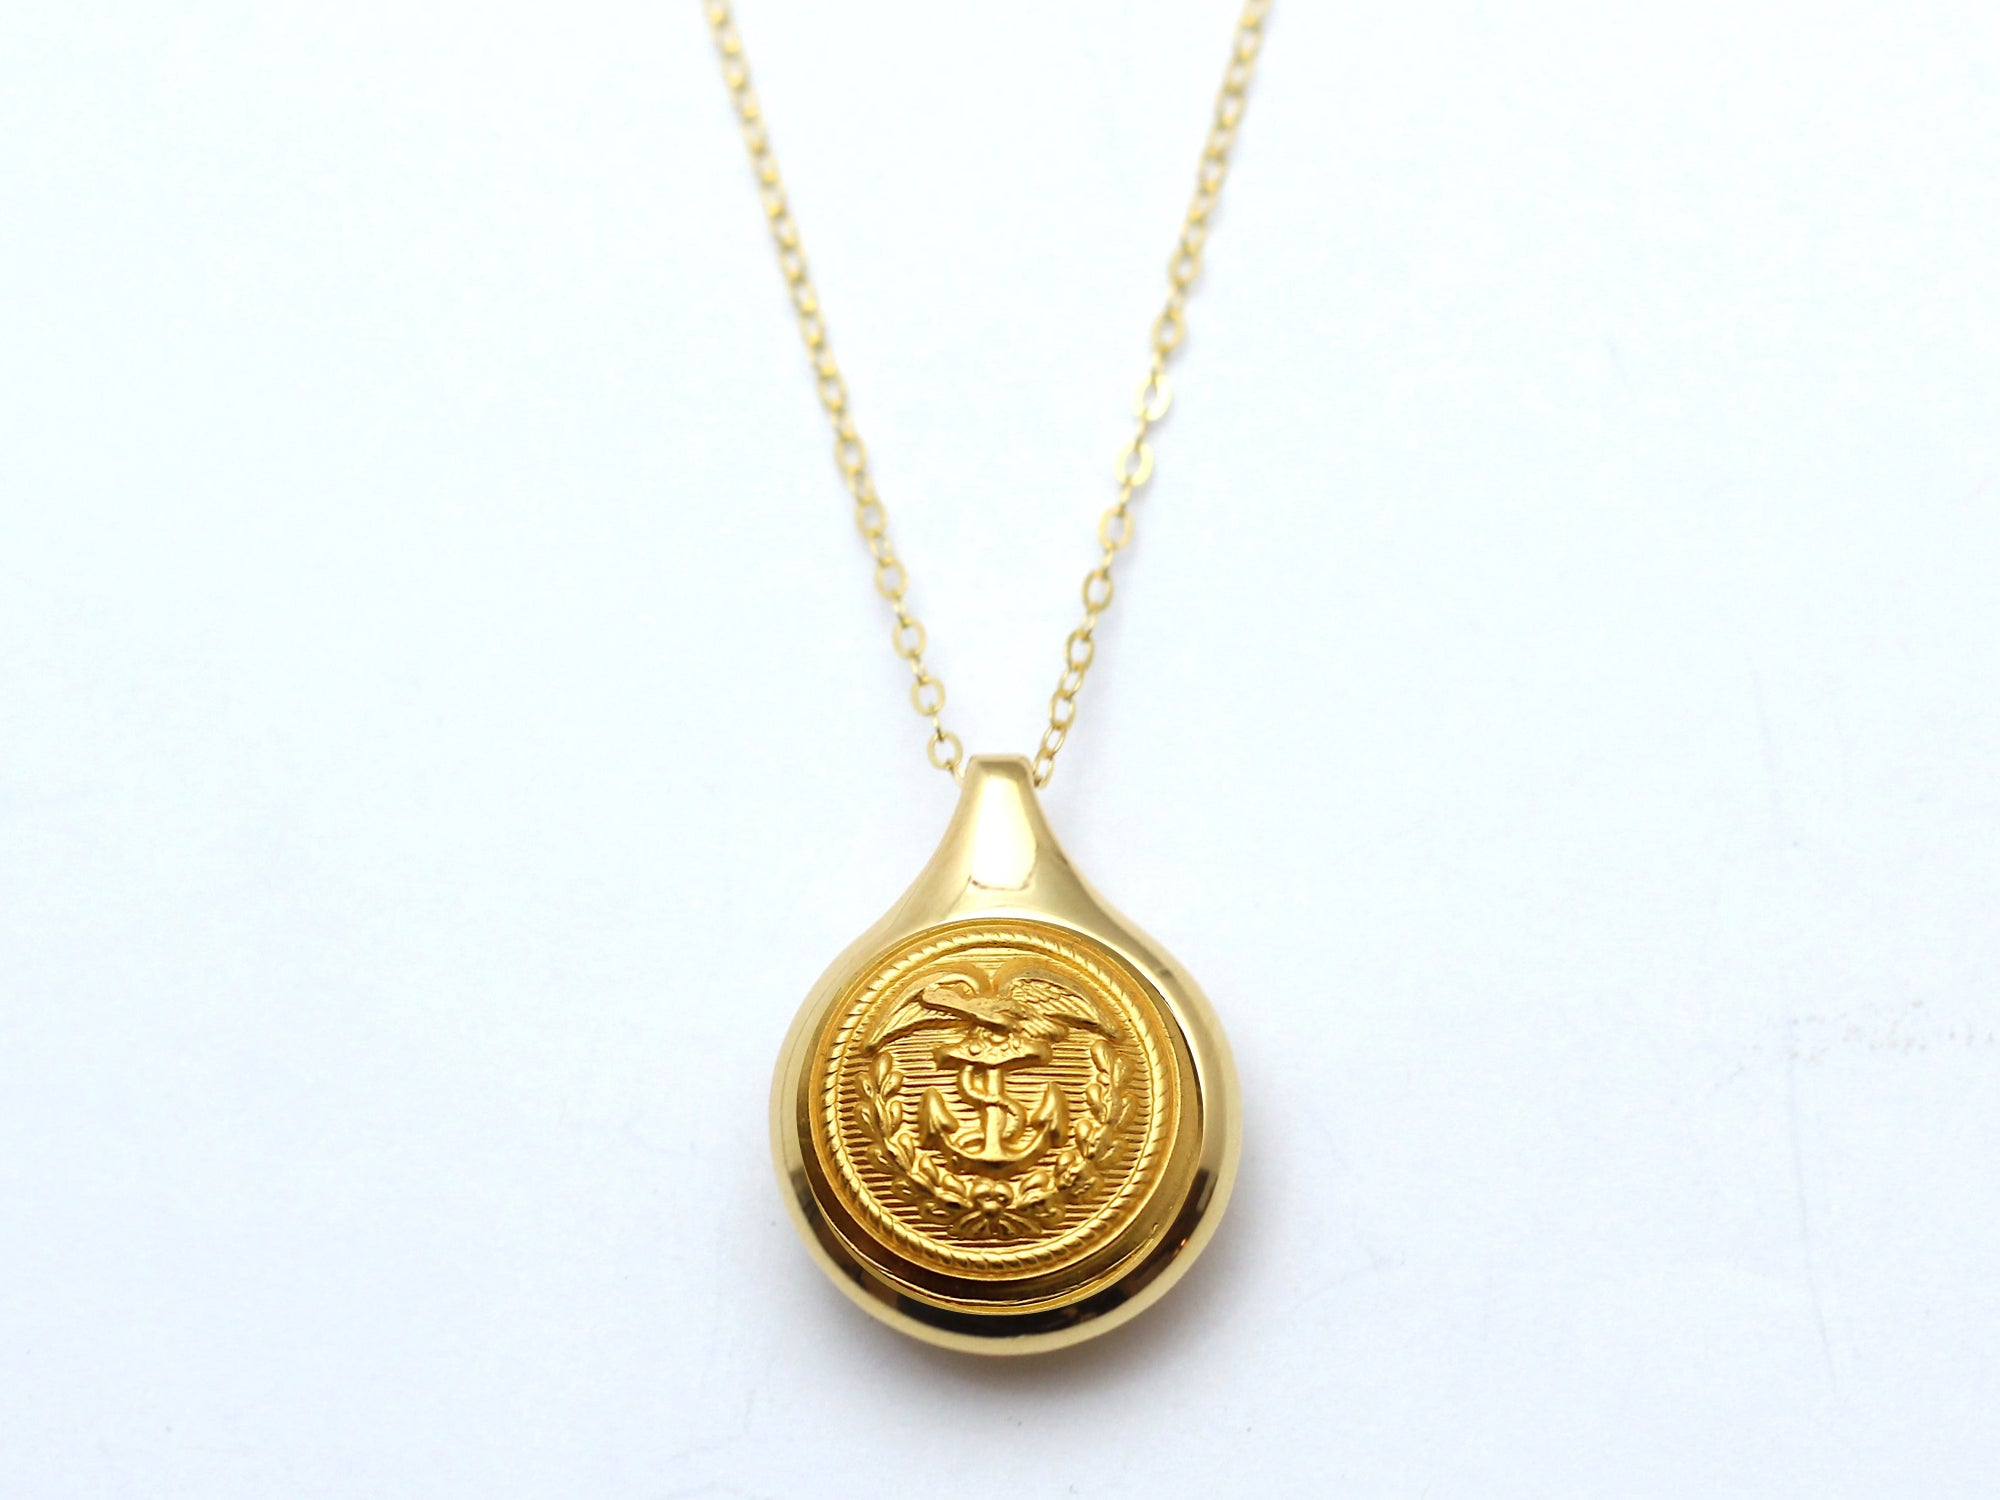 Coast Guard Button Sleek Gold Necklace